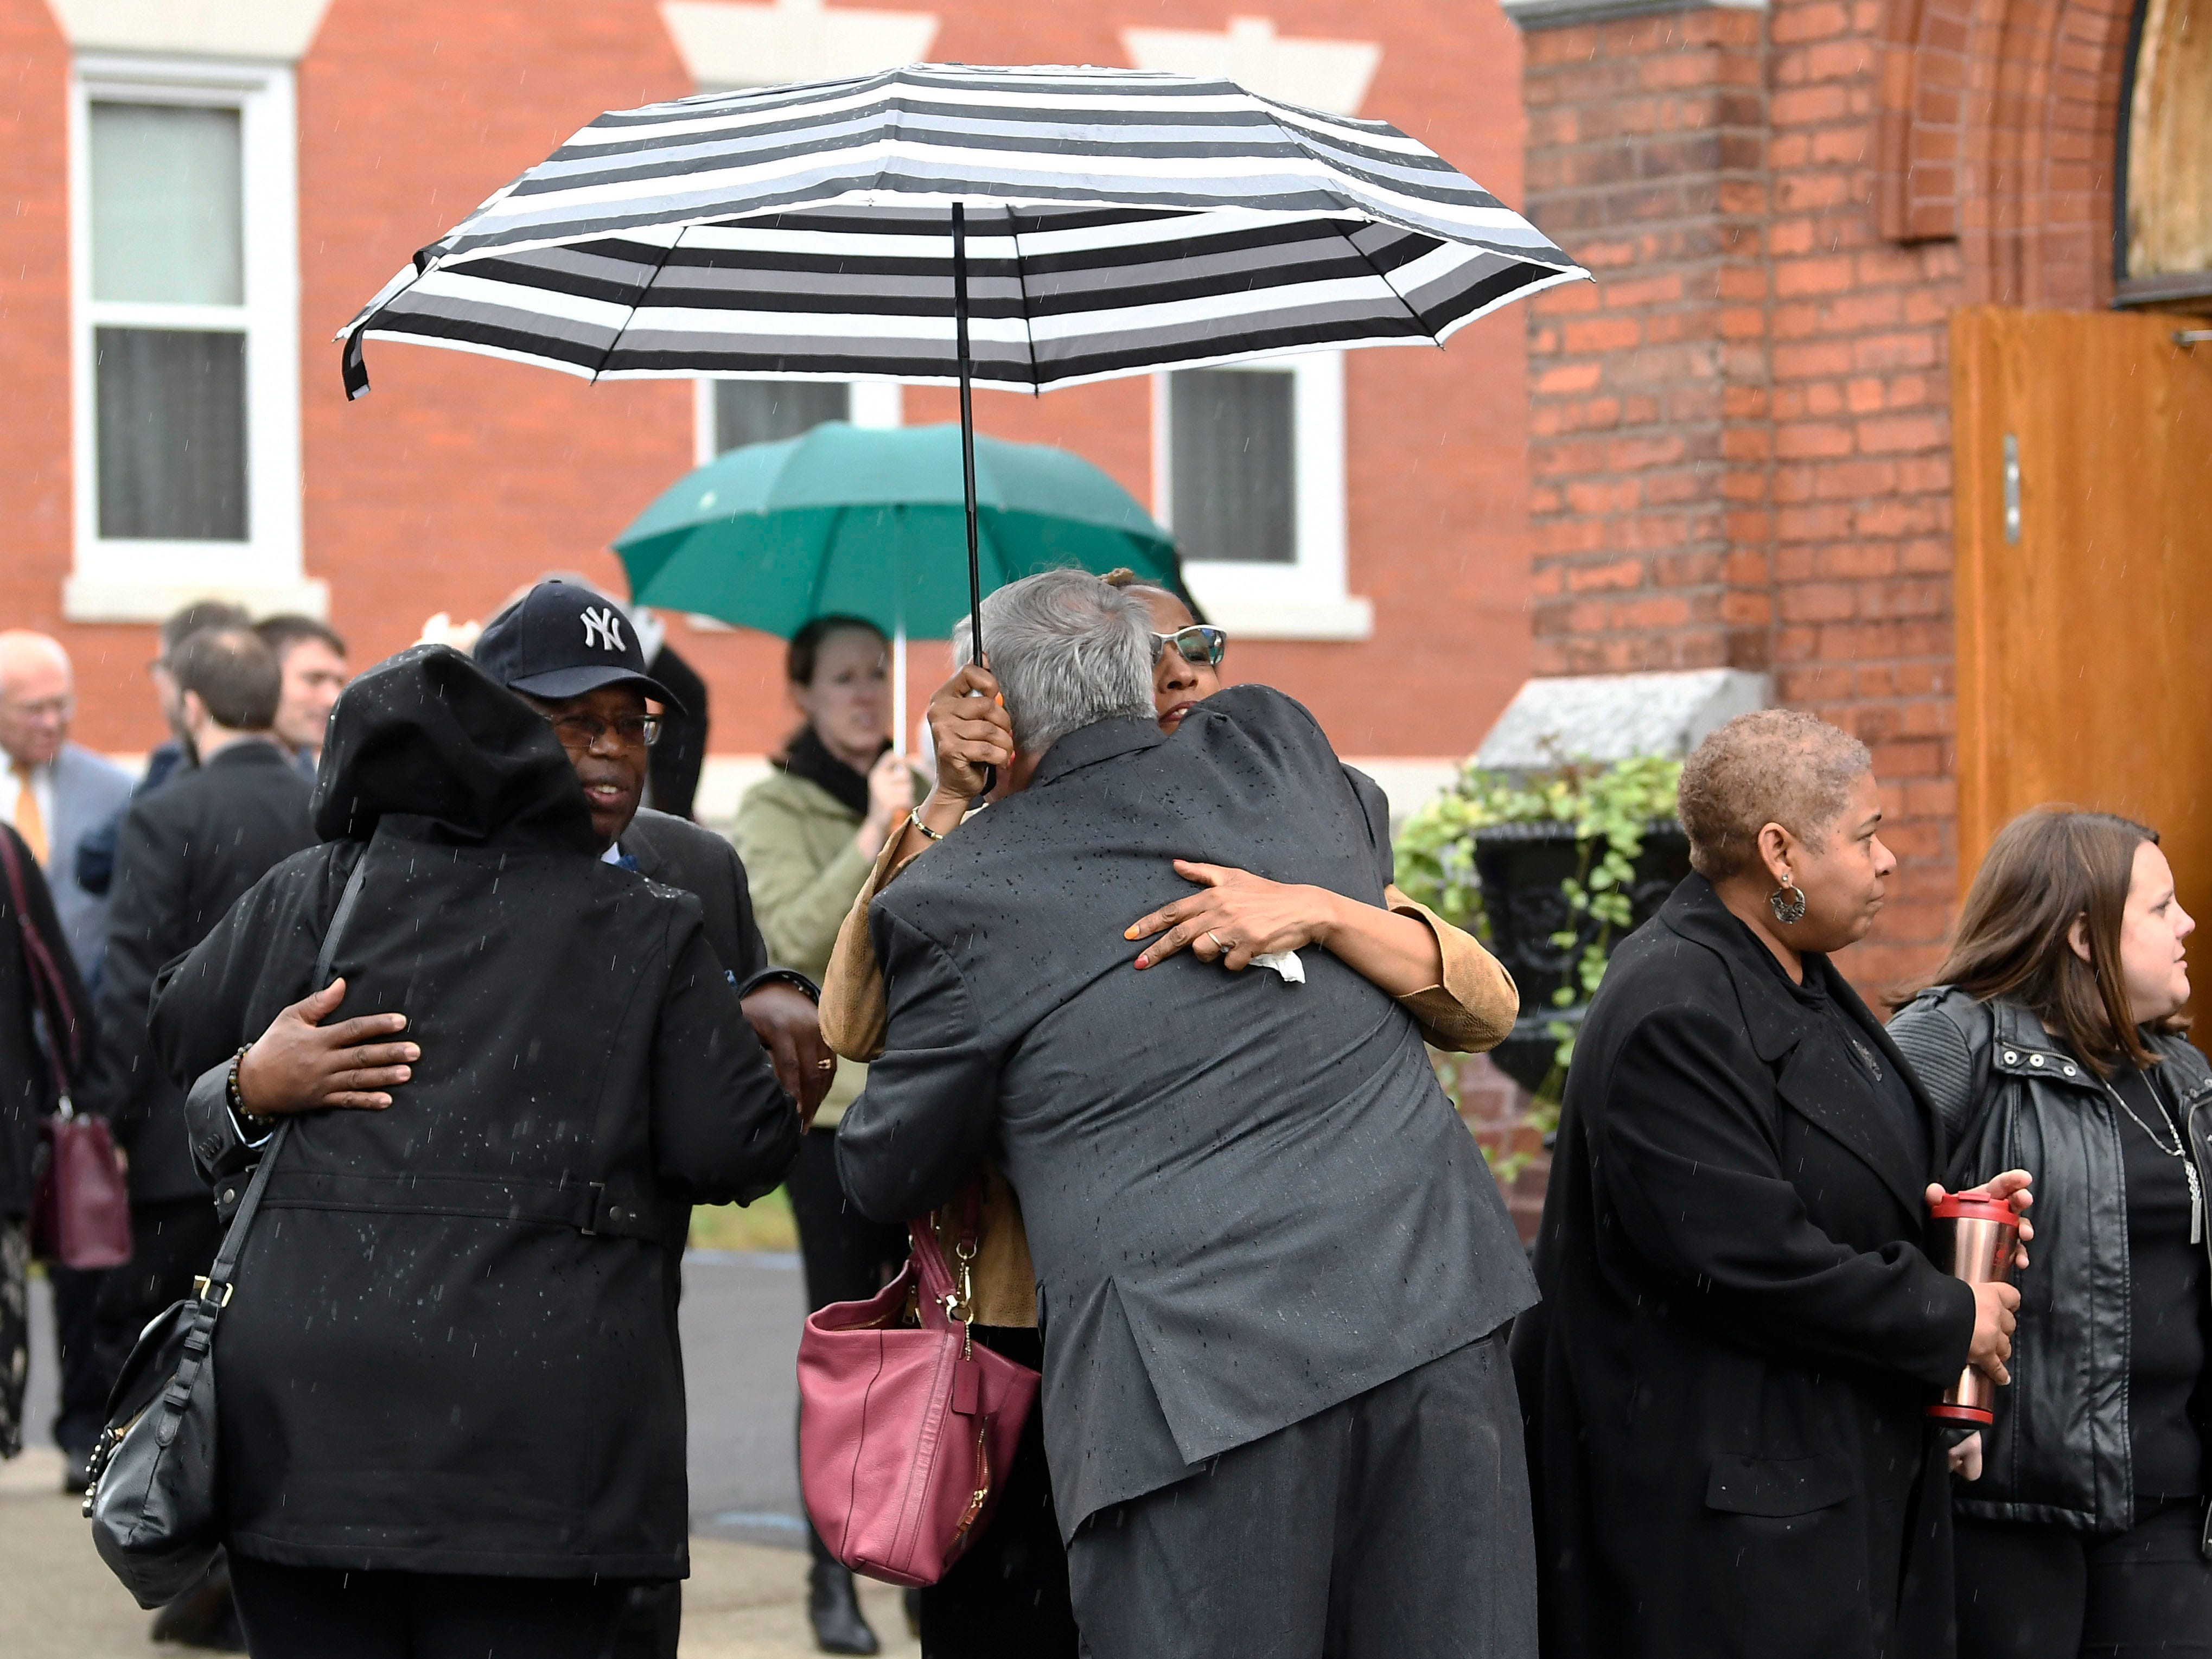 Friends and family arrive for a funeral mass for eight of the 20 people killed in last Saturday's fatal limousine crash in Schoharie, N.Y., during a memorial service at St. Stanislaus Roman Catholic Church in Amsterdam, N.Y., Saturday, Oct. 13, 2018. (AP Photo/Hans Pennink)